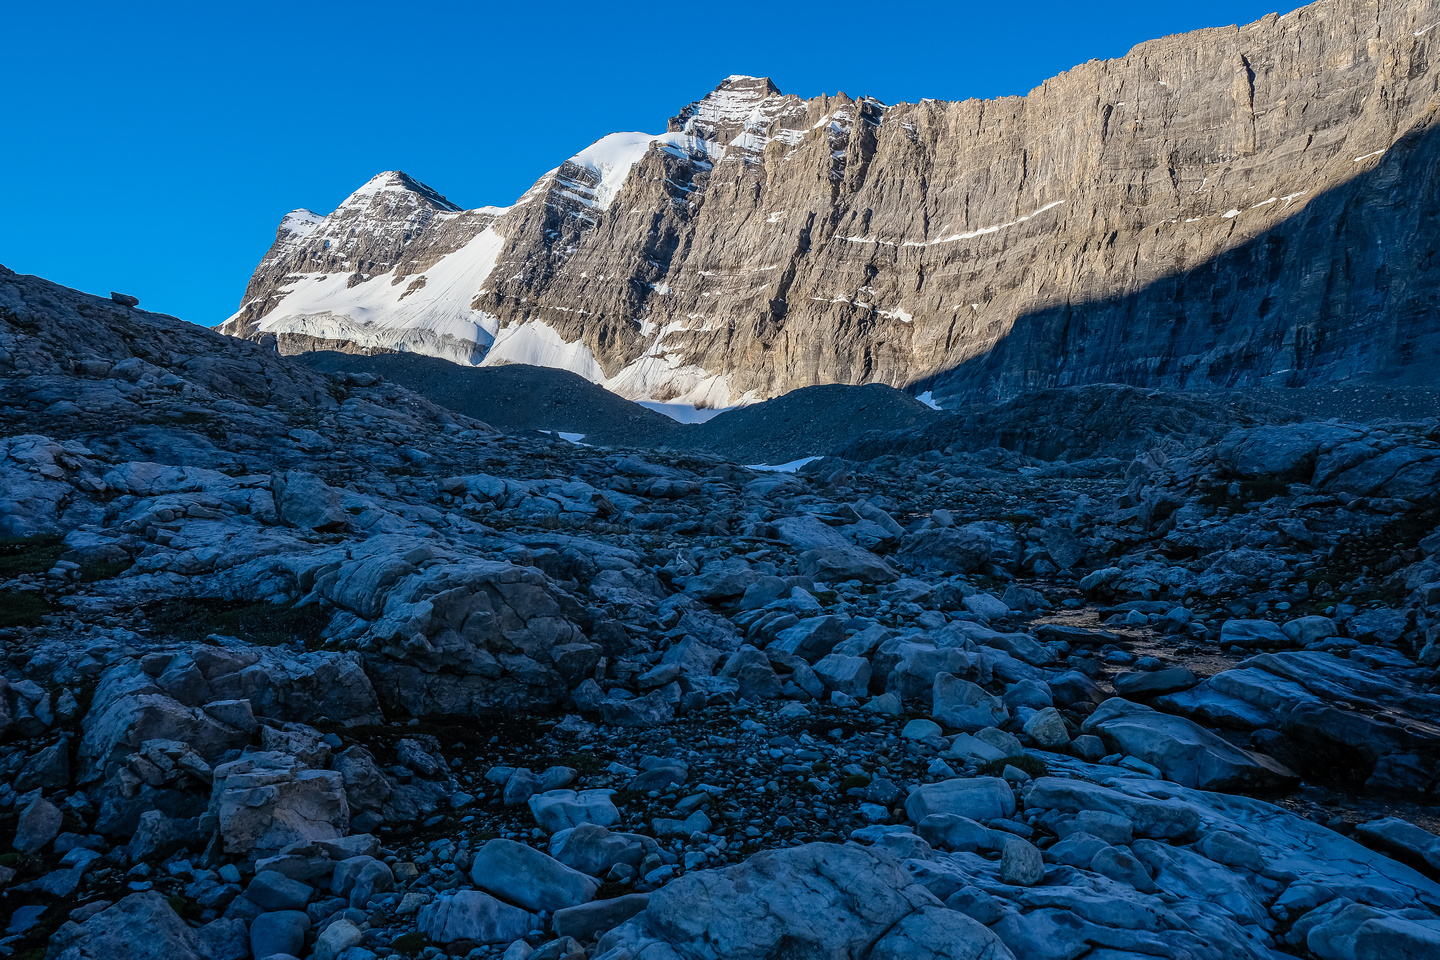 Hiking up the lovely karst valley between Harris and the impressive east wall of Willingdon.